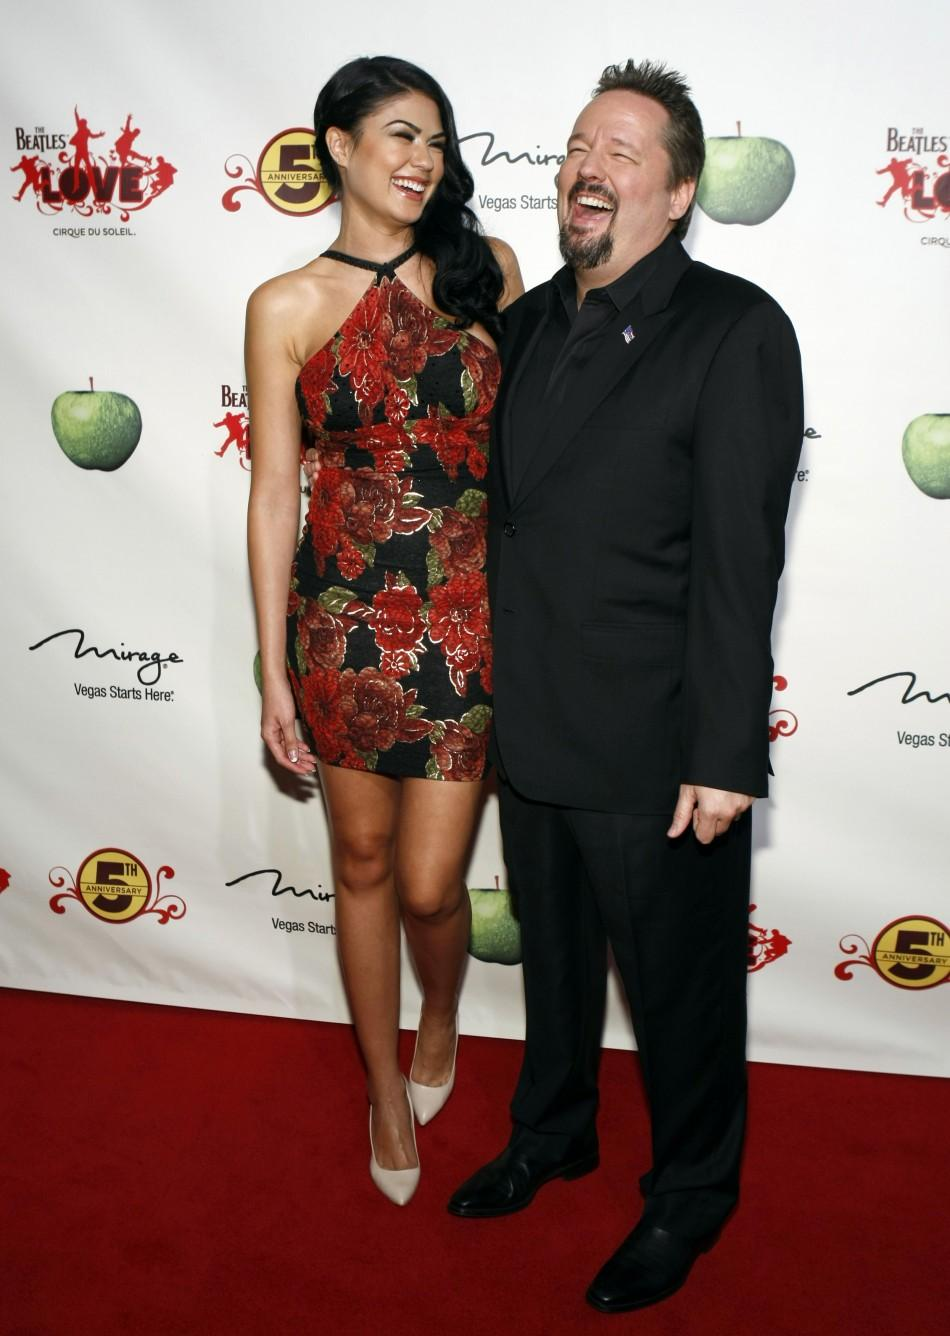 """Taylor Makakoa (L) and ventriloquist Terry Fator arrive for the fifth anniversary celebration of """"The Beatles LOVE by Cirque du Soleil"""" show at the Mirage Hotel and Casino in Las Vegas, Nevada June 8, 2011."""